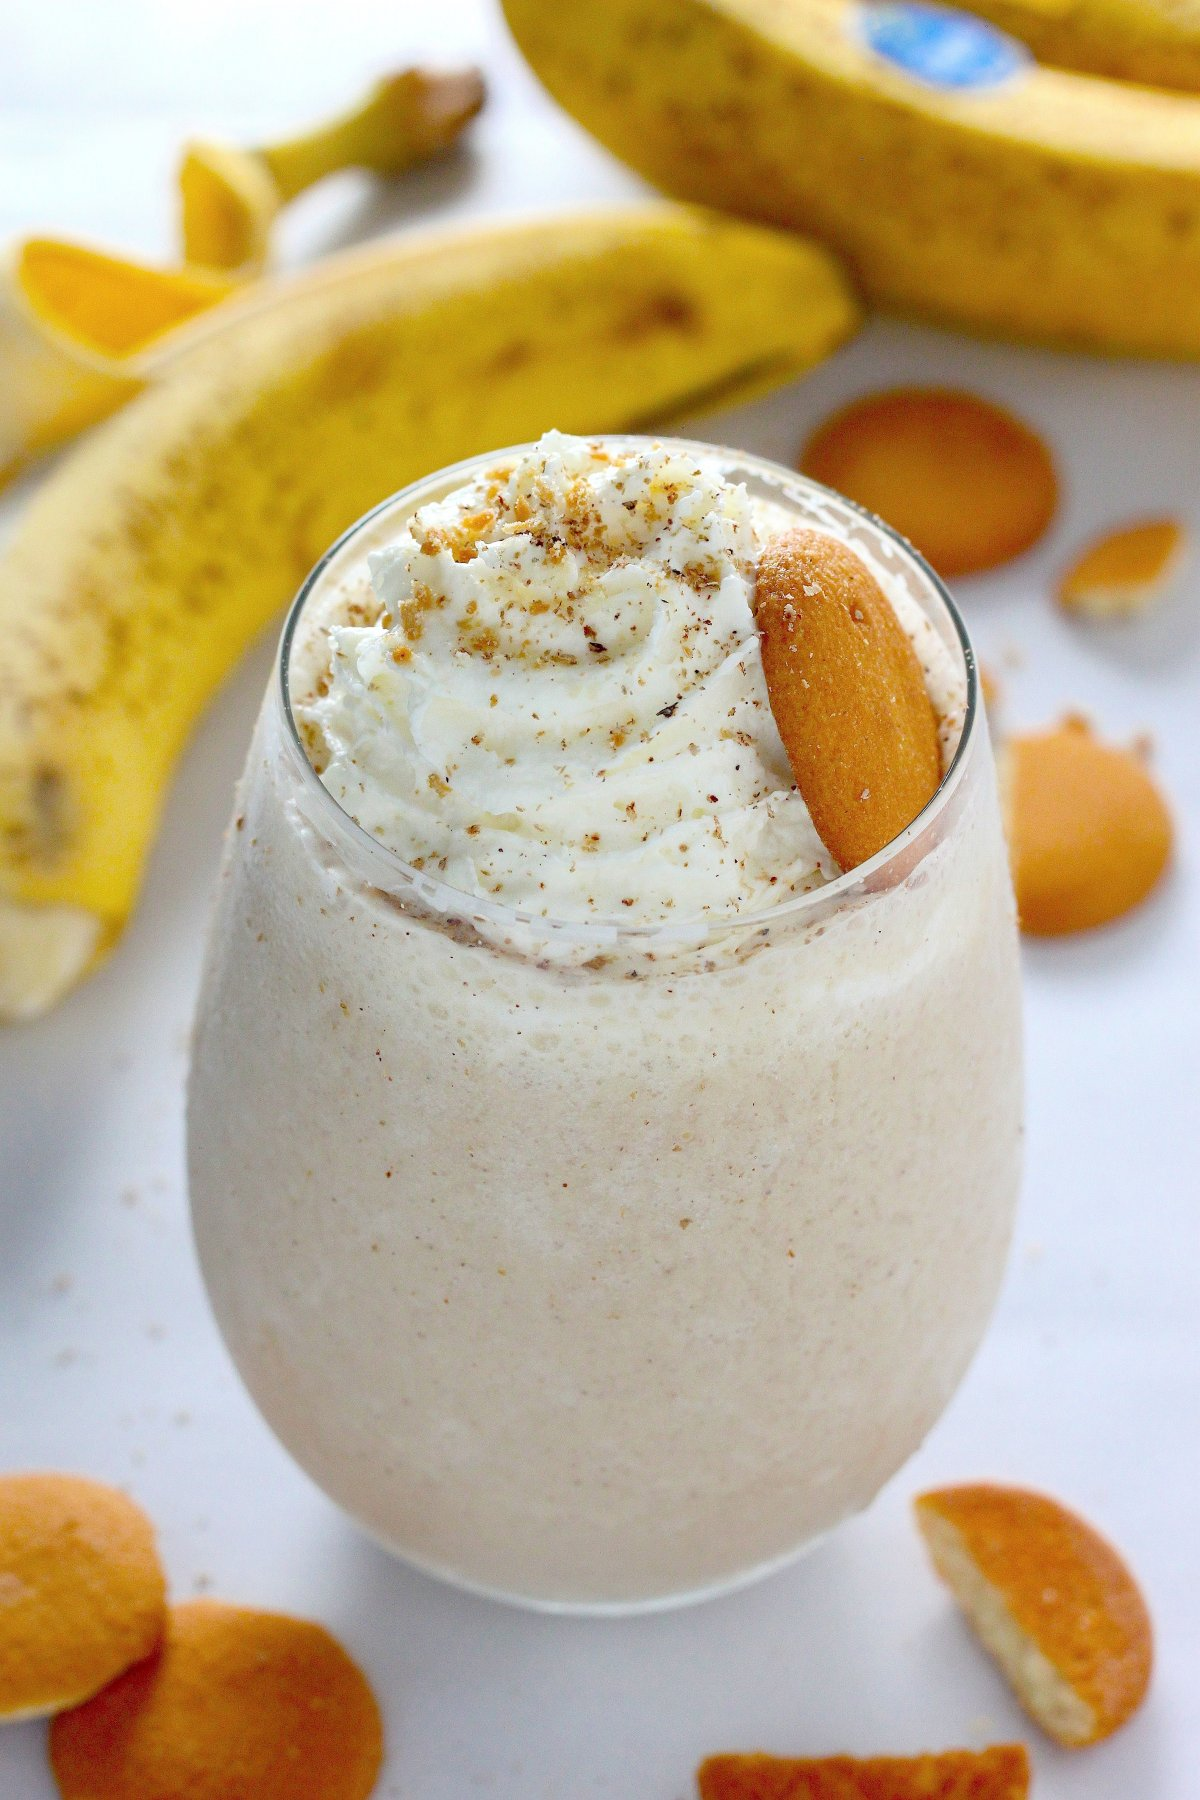 Healthy Banana Cream Pie Smoothie - Baker by Nature